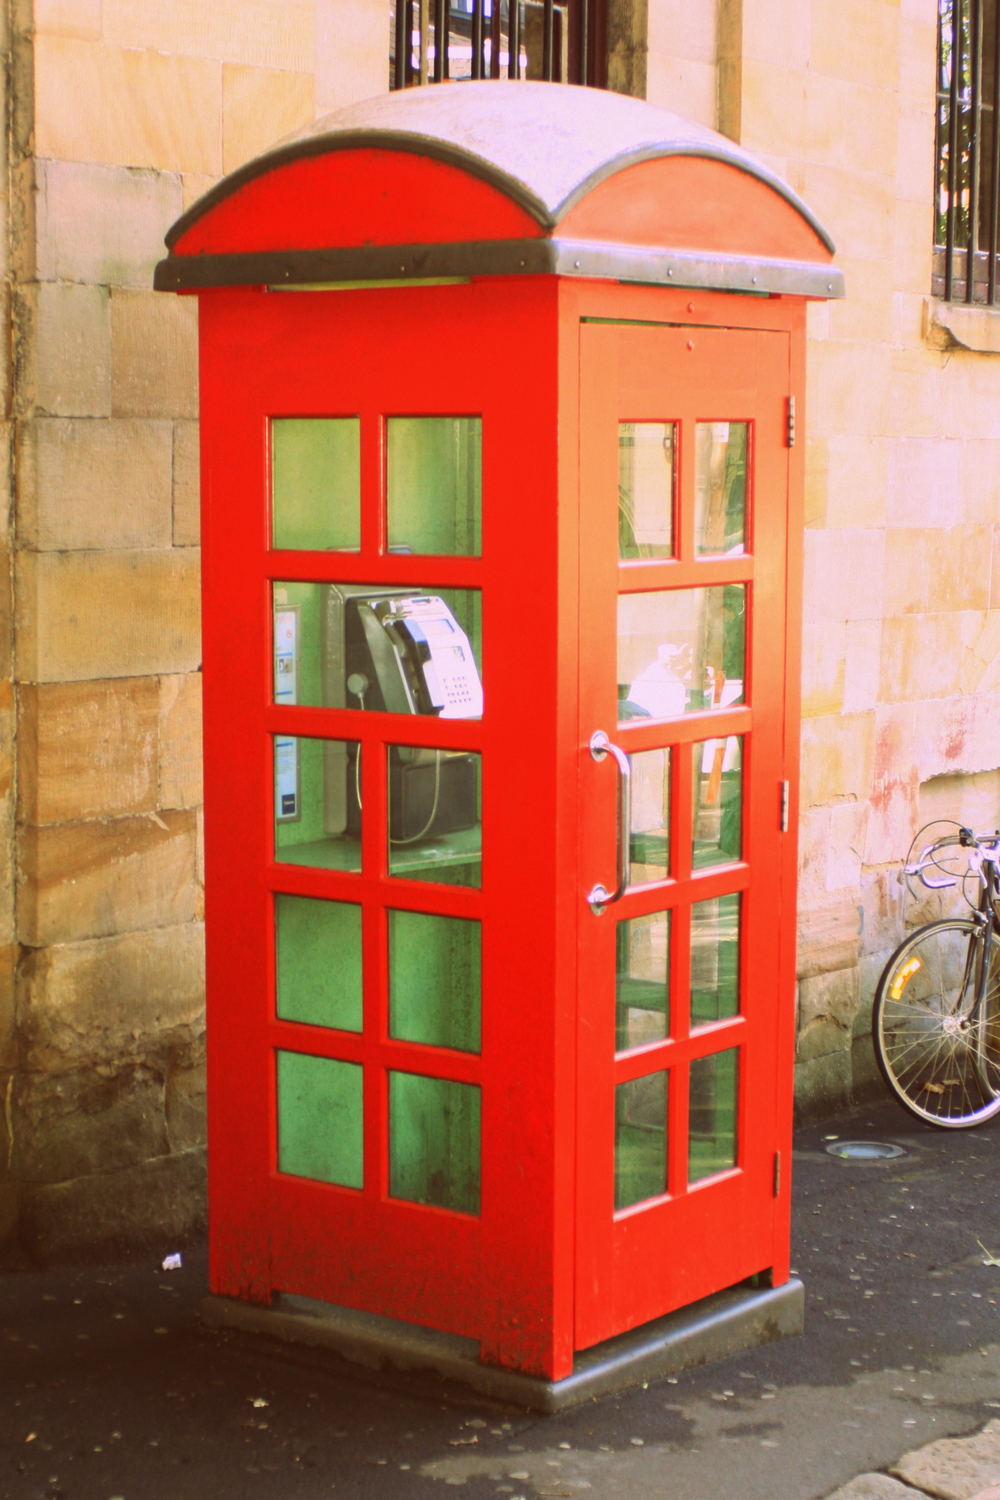 Red Telephone Booth (2013)